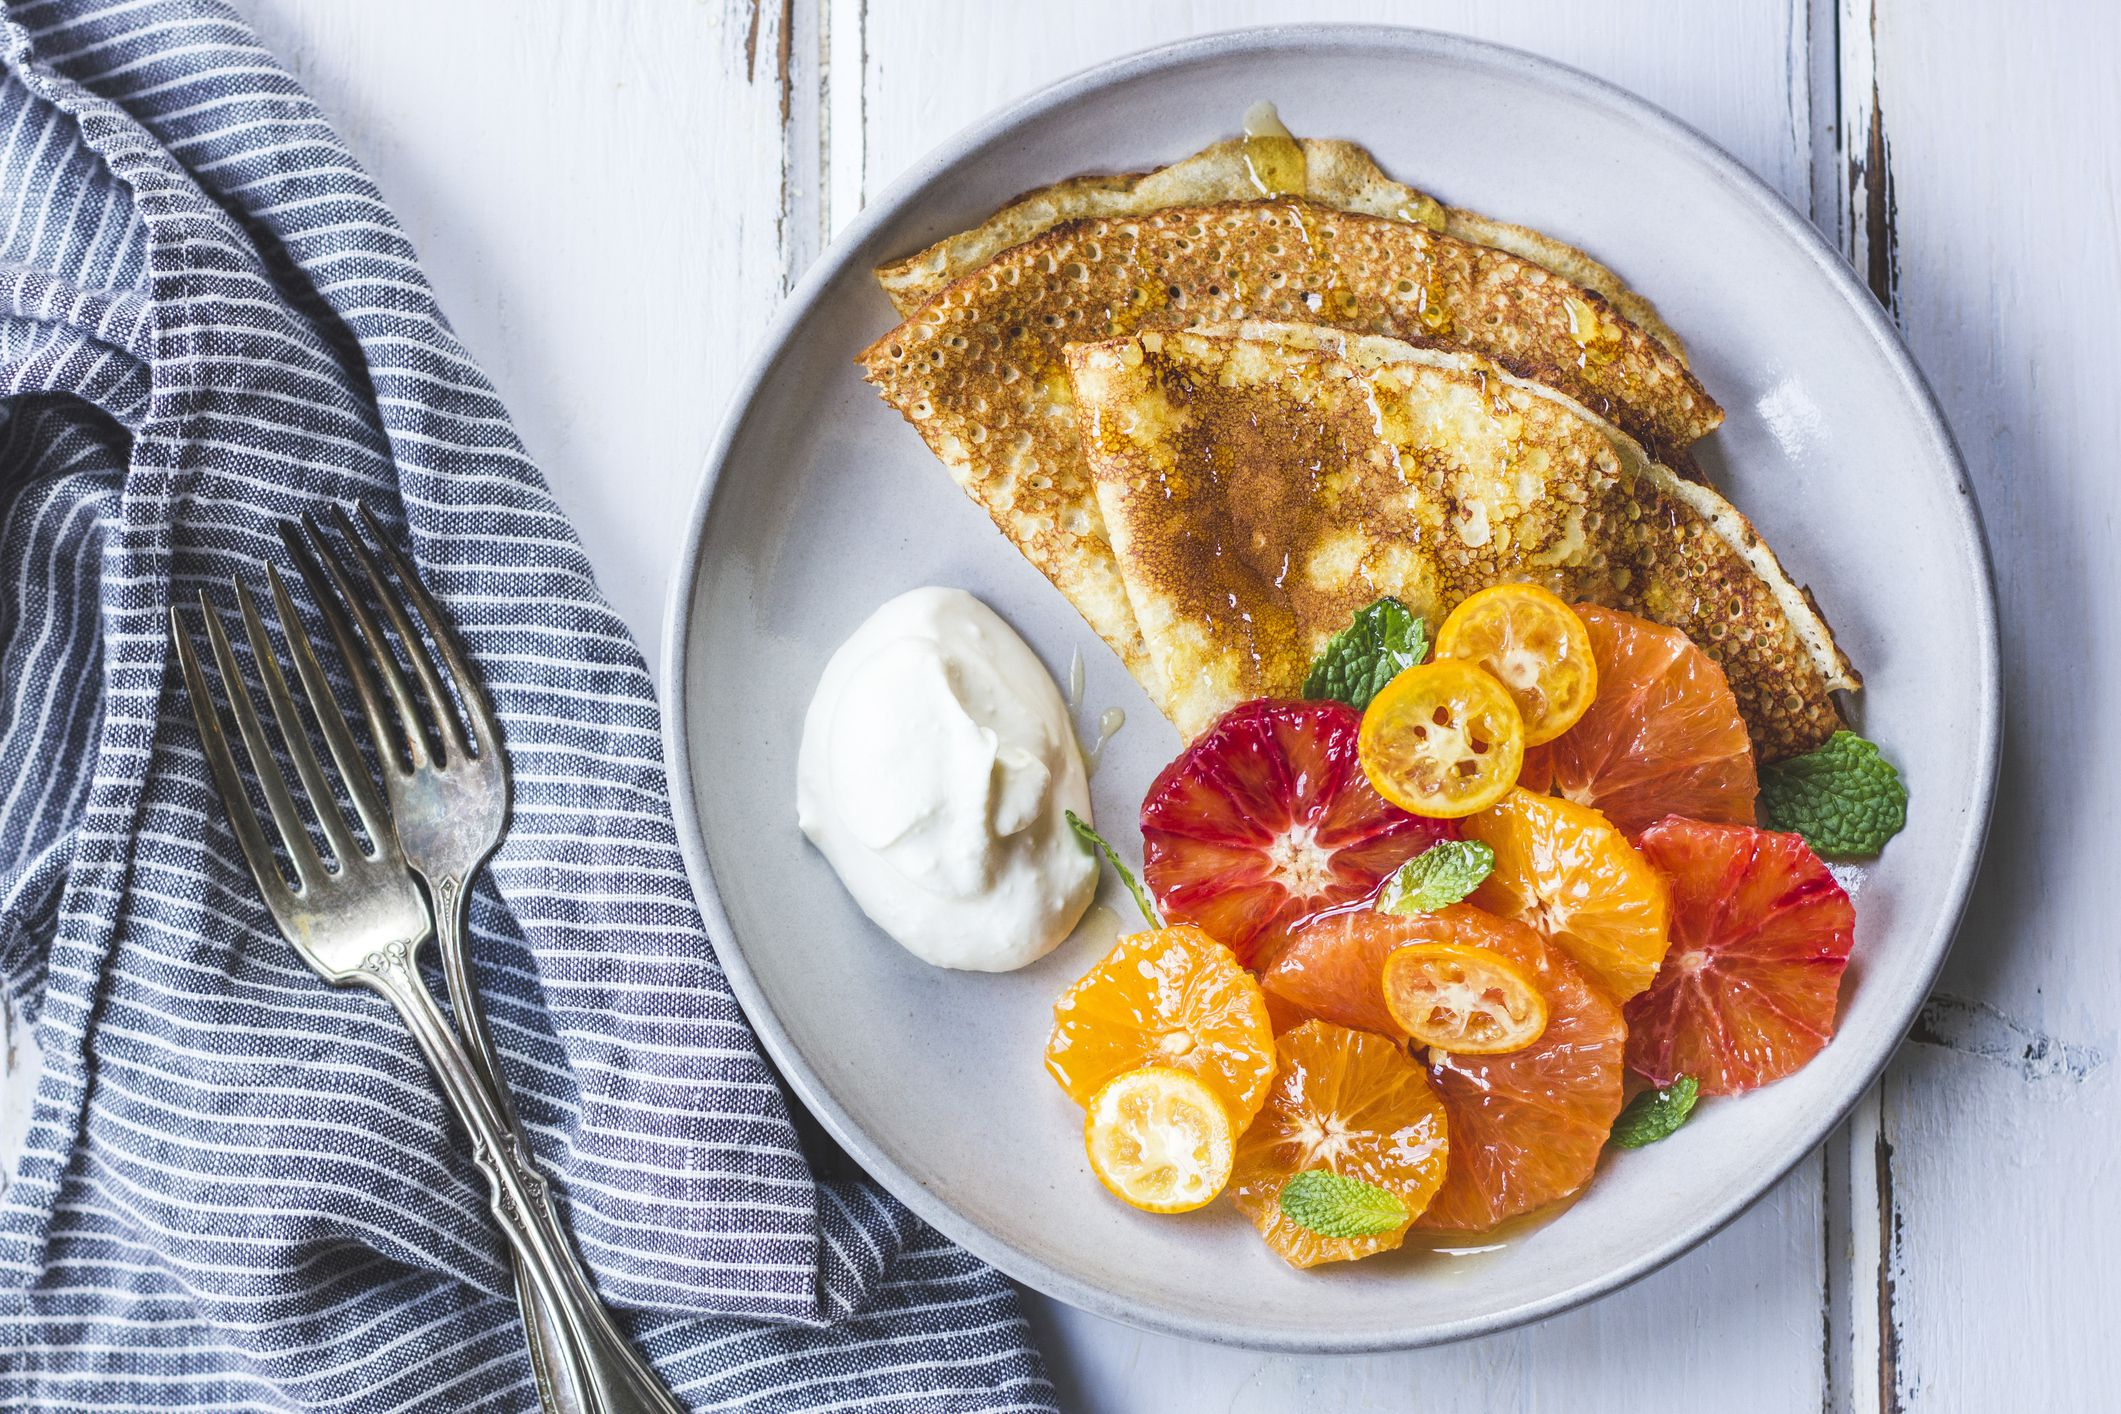 Crepes with Citrus Fruit Salad